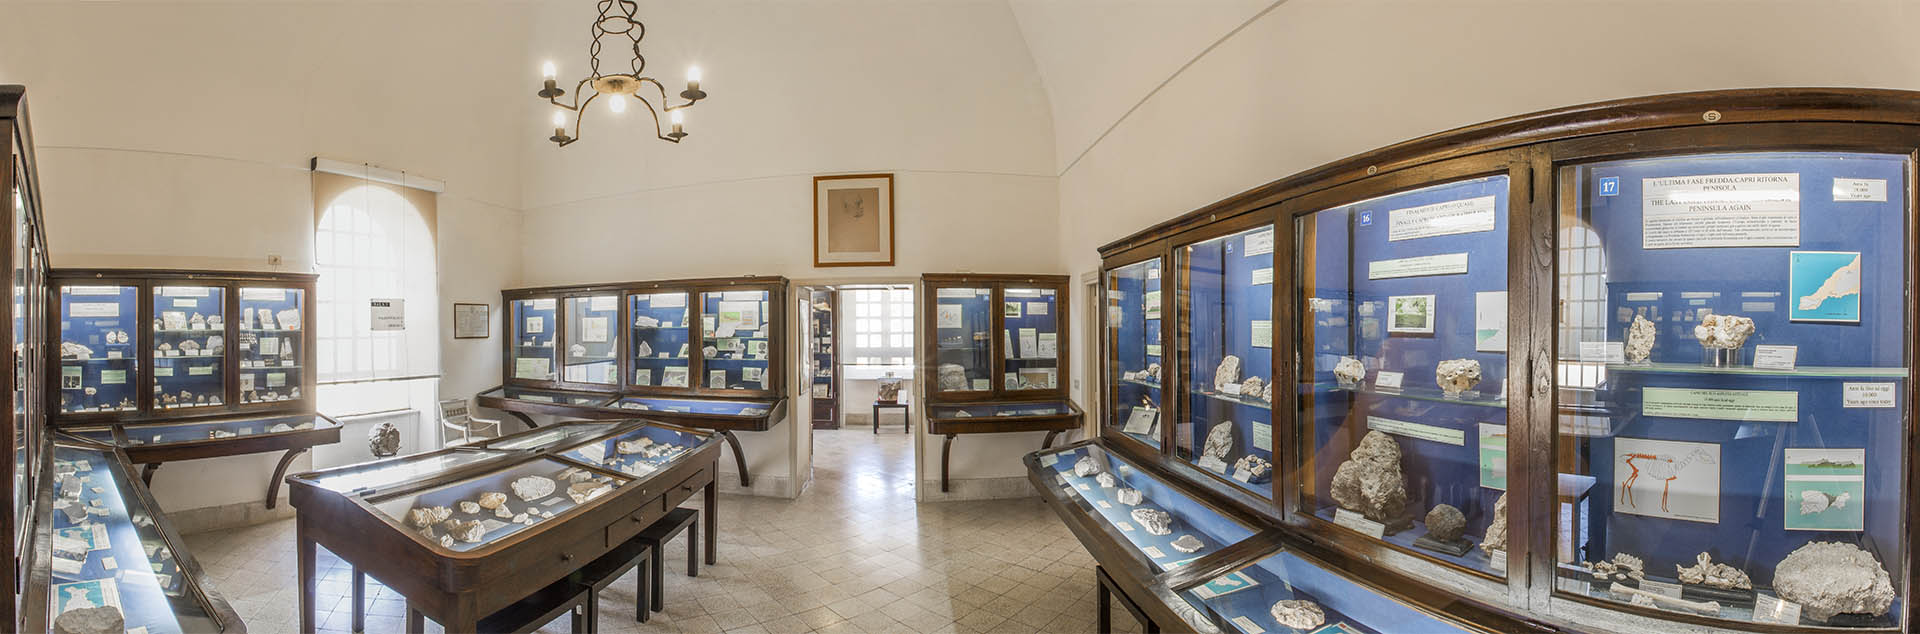 Ignazio Cerio Museum Palaeontology and Geology Collection